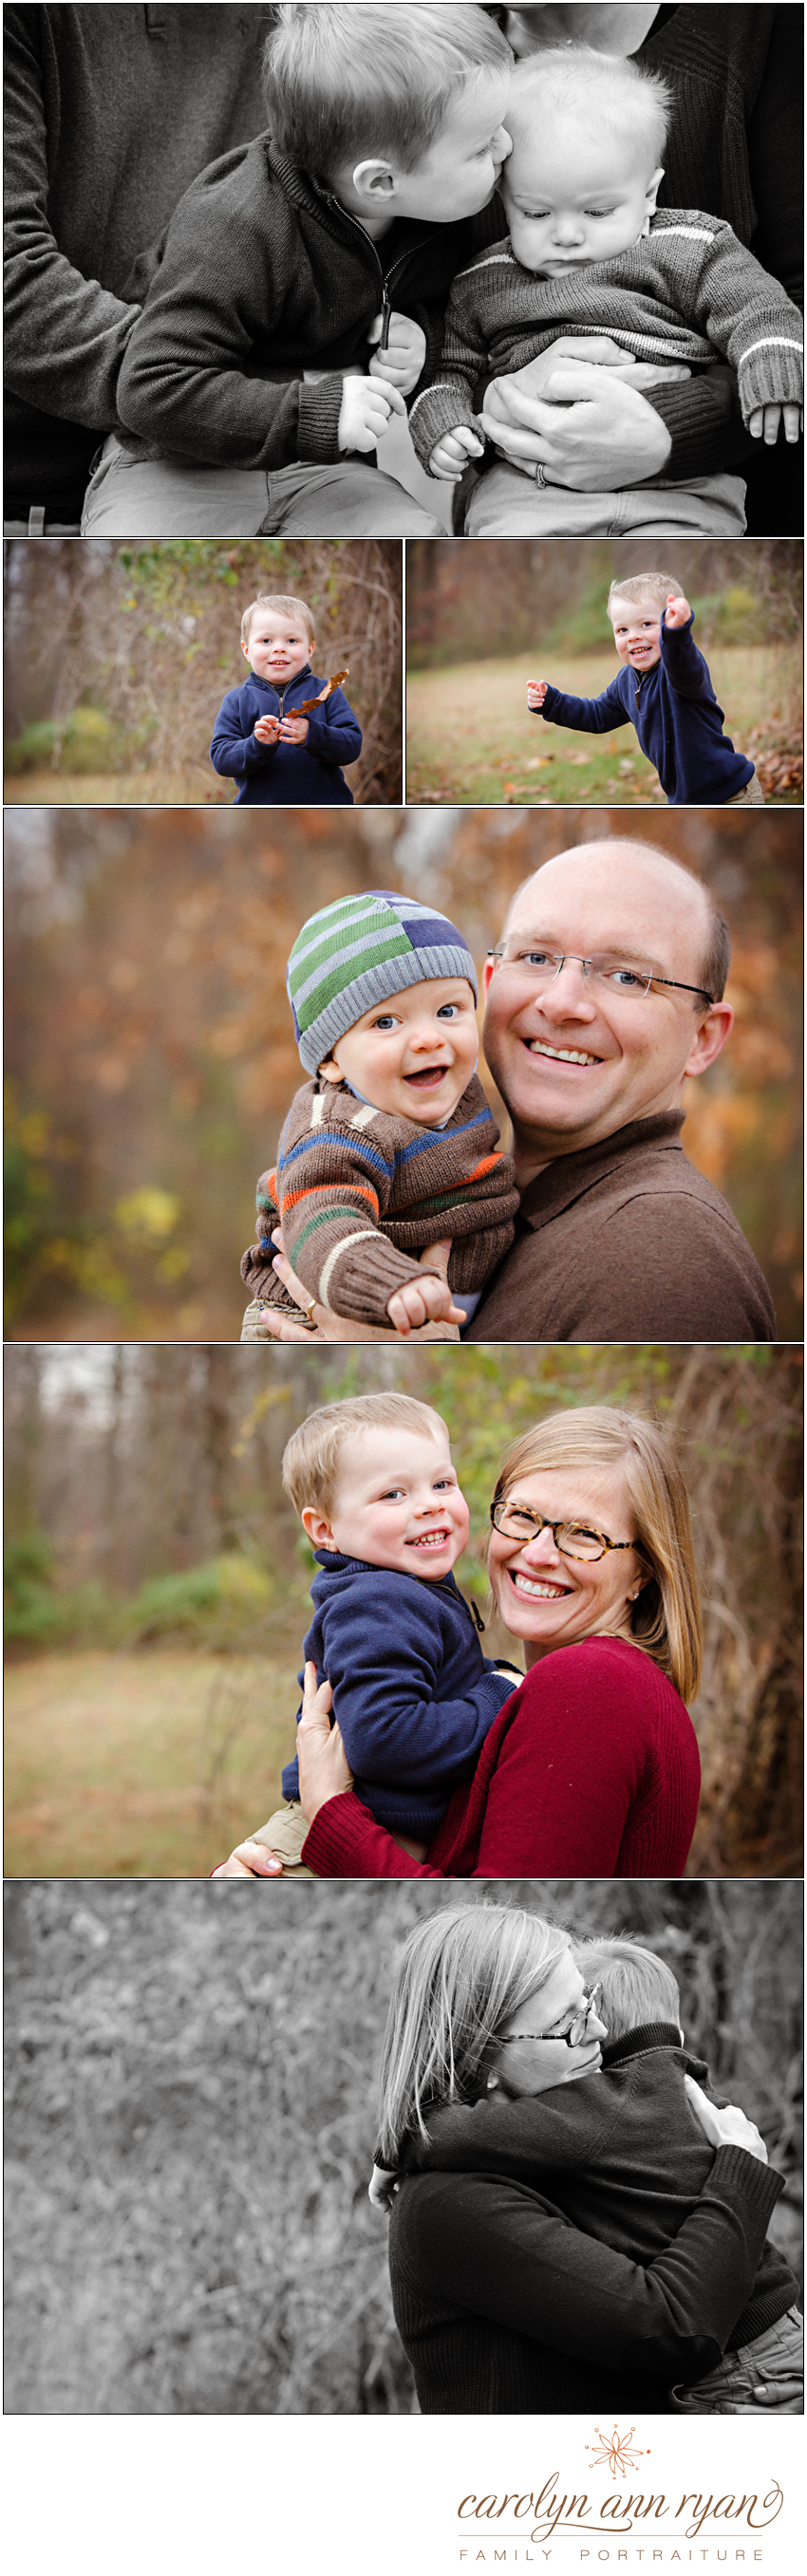 Union County North Carolina Family Photographer Carolyn Ann Ryan takes playful photos of children and parents